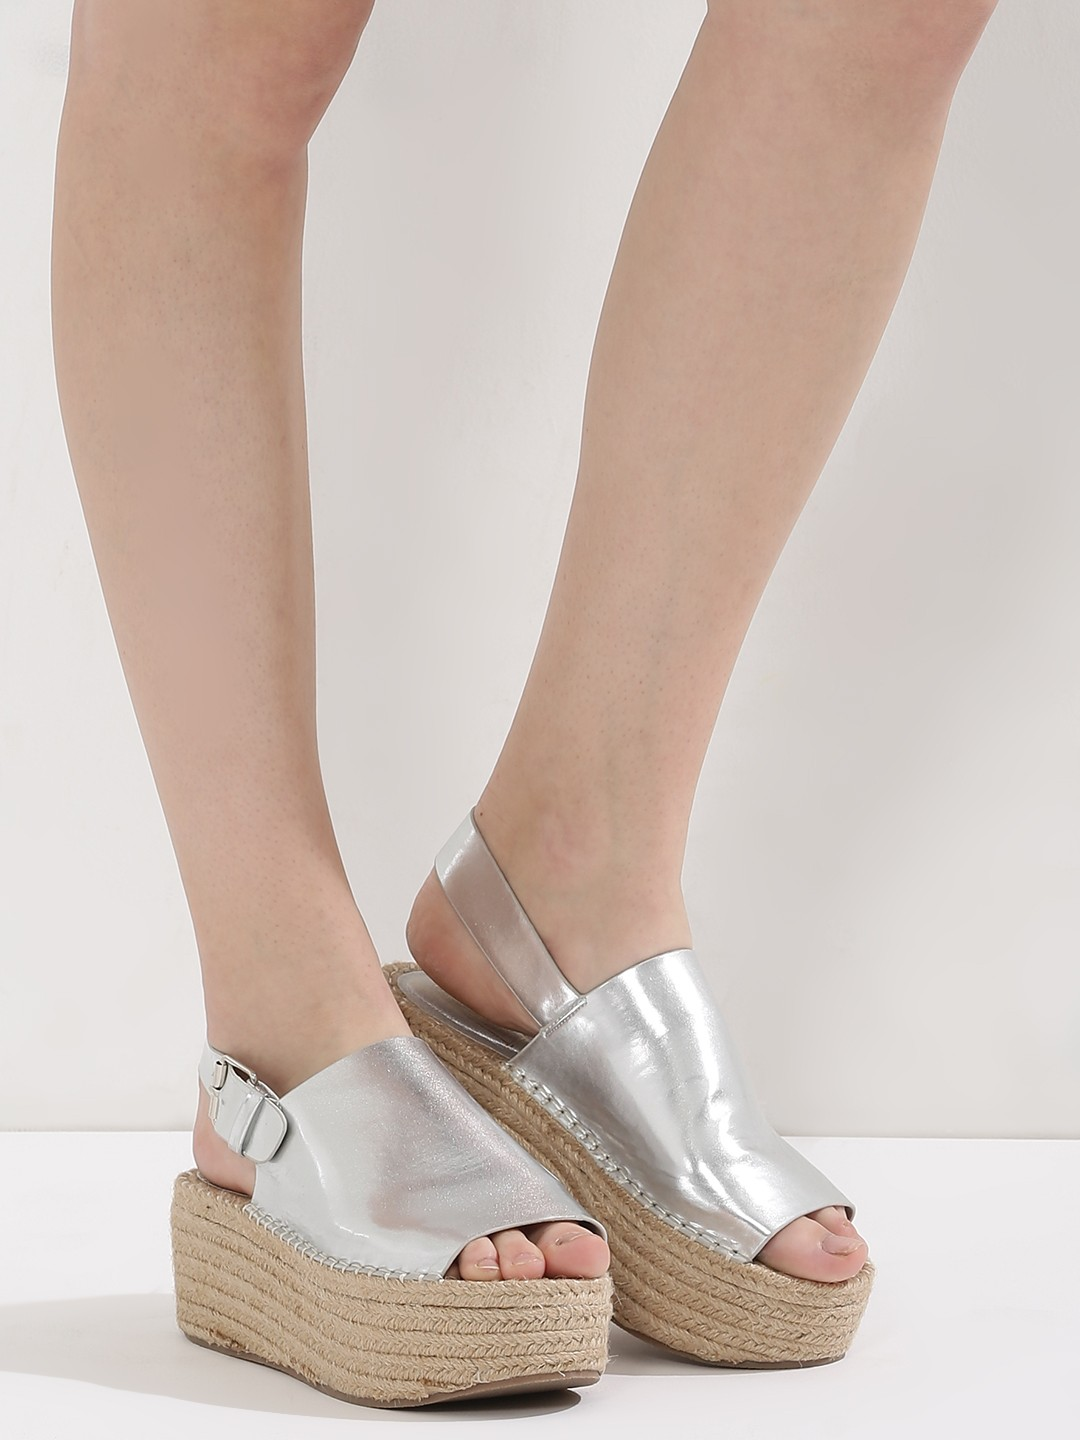 7. types of footwear - Metallic Flatforms With Jute Detail